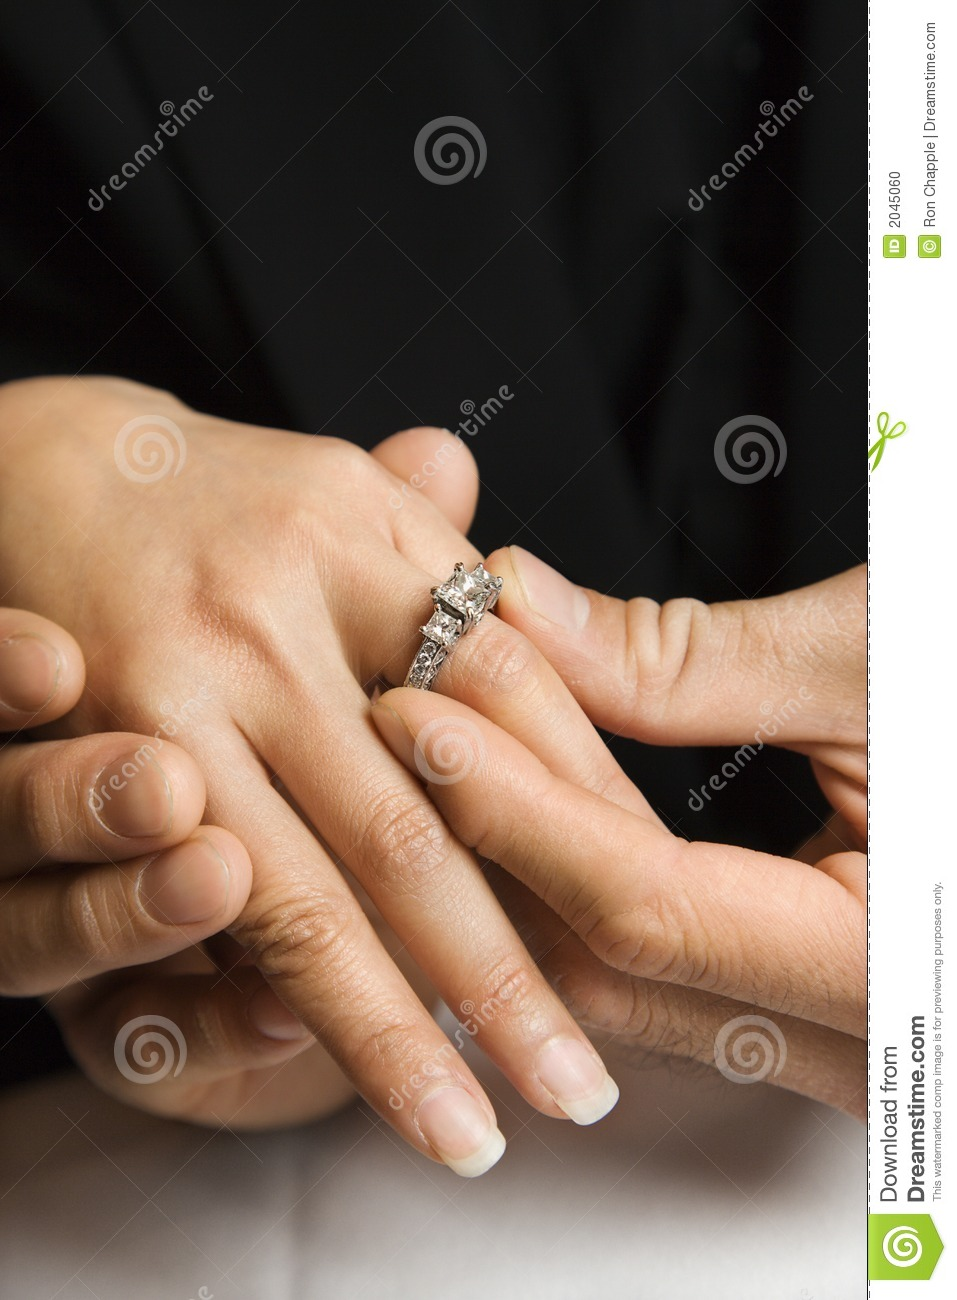 Female Engagement Ring Hand